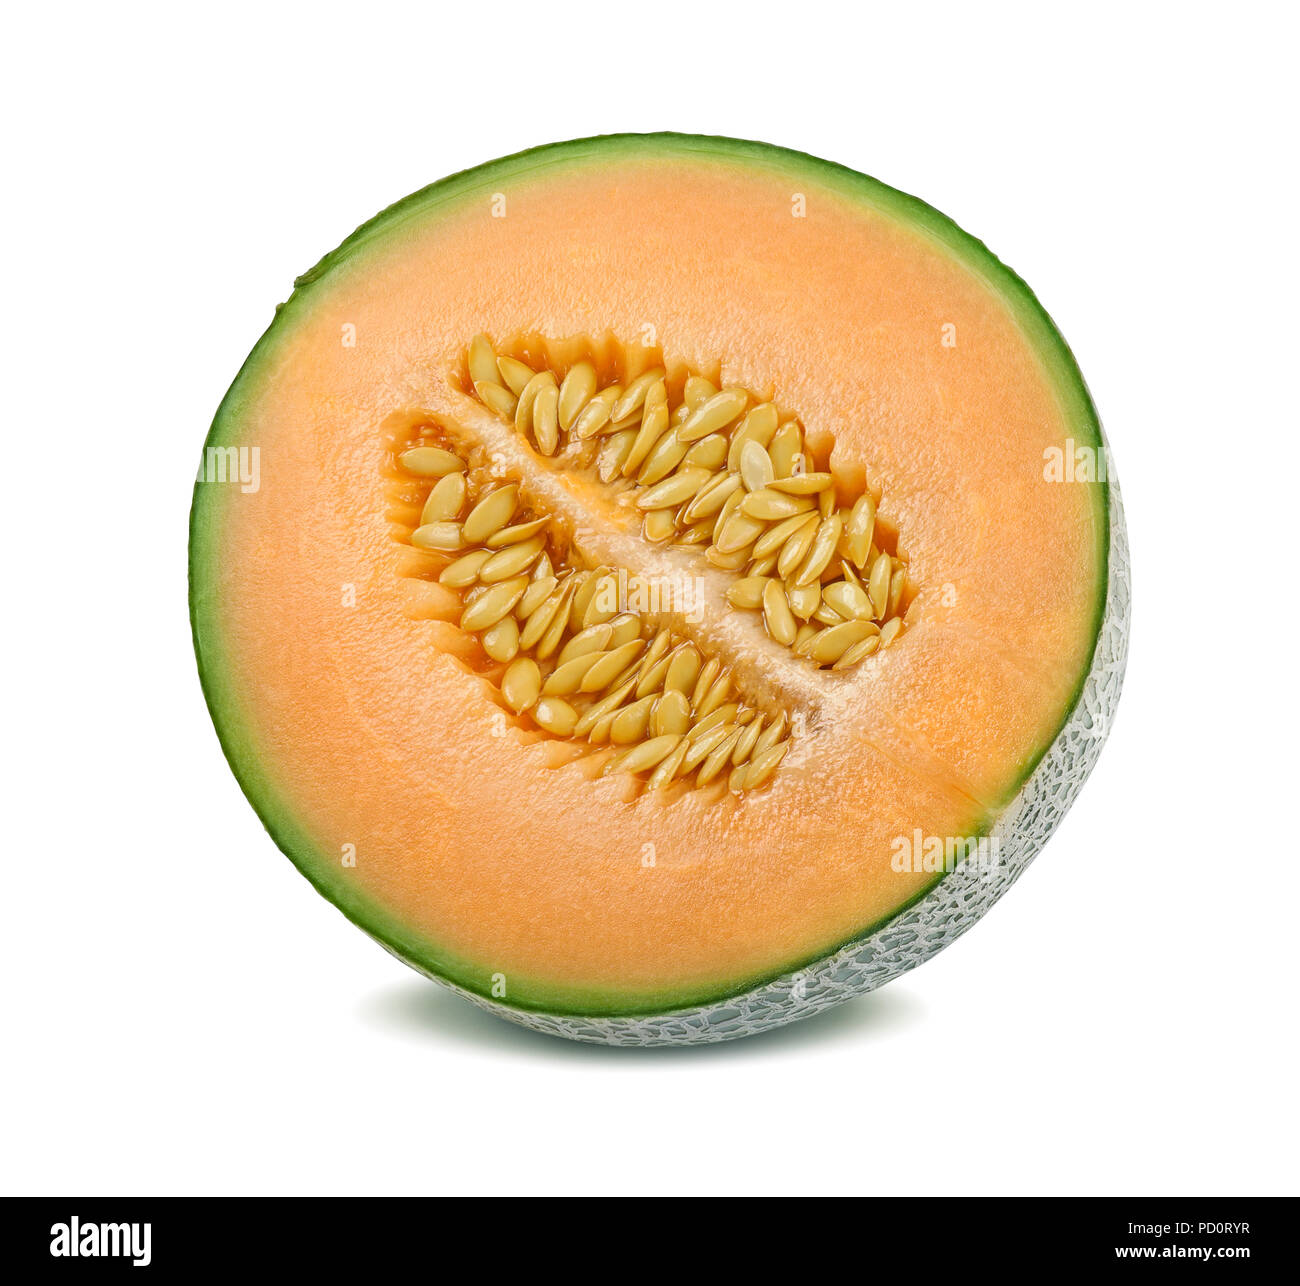 La moitié de melon cantaloup split isolé sur fond blanc Photo Stock